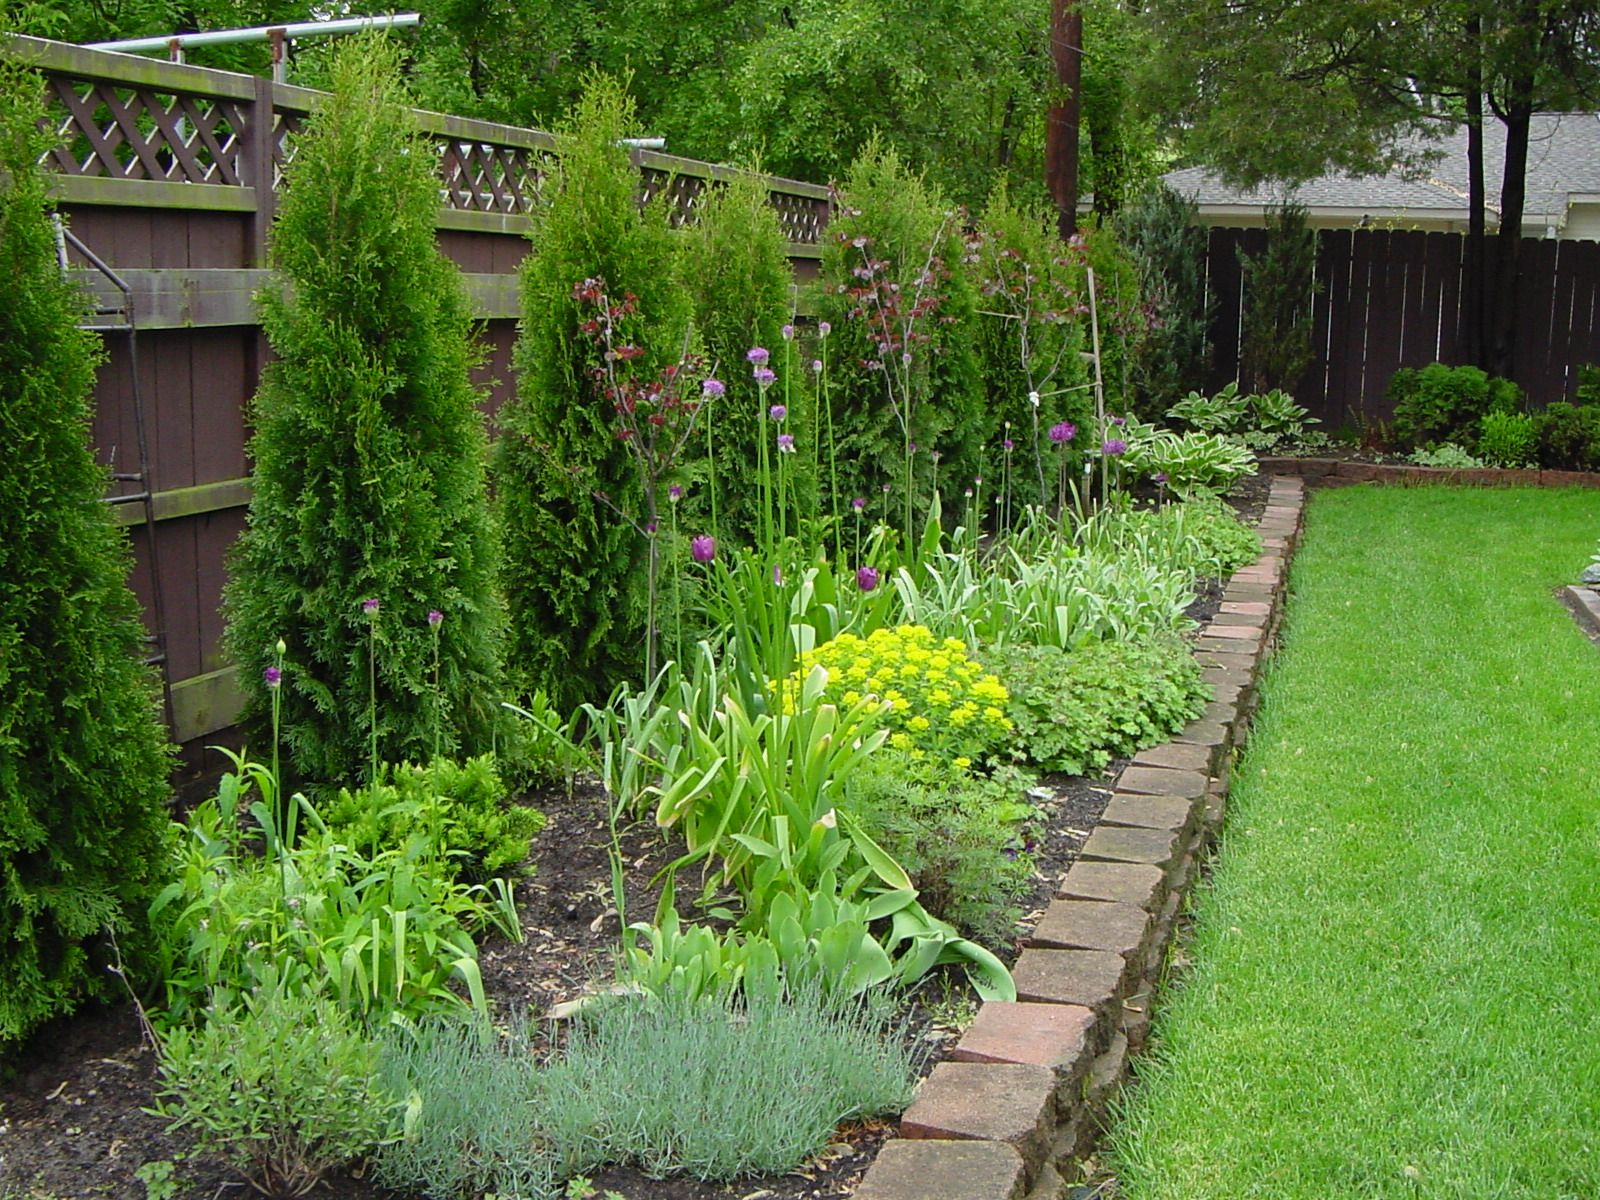 Image Showing Arborvitae Planted Along Fence Line Fences